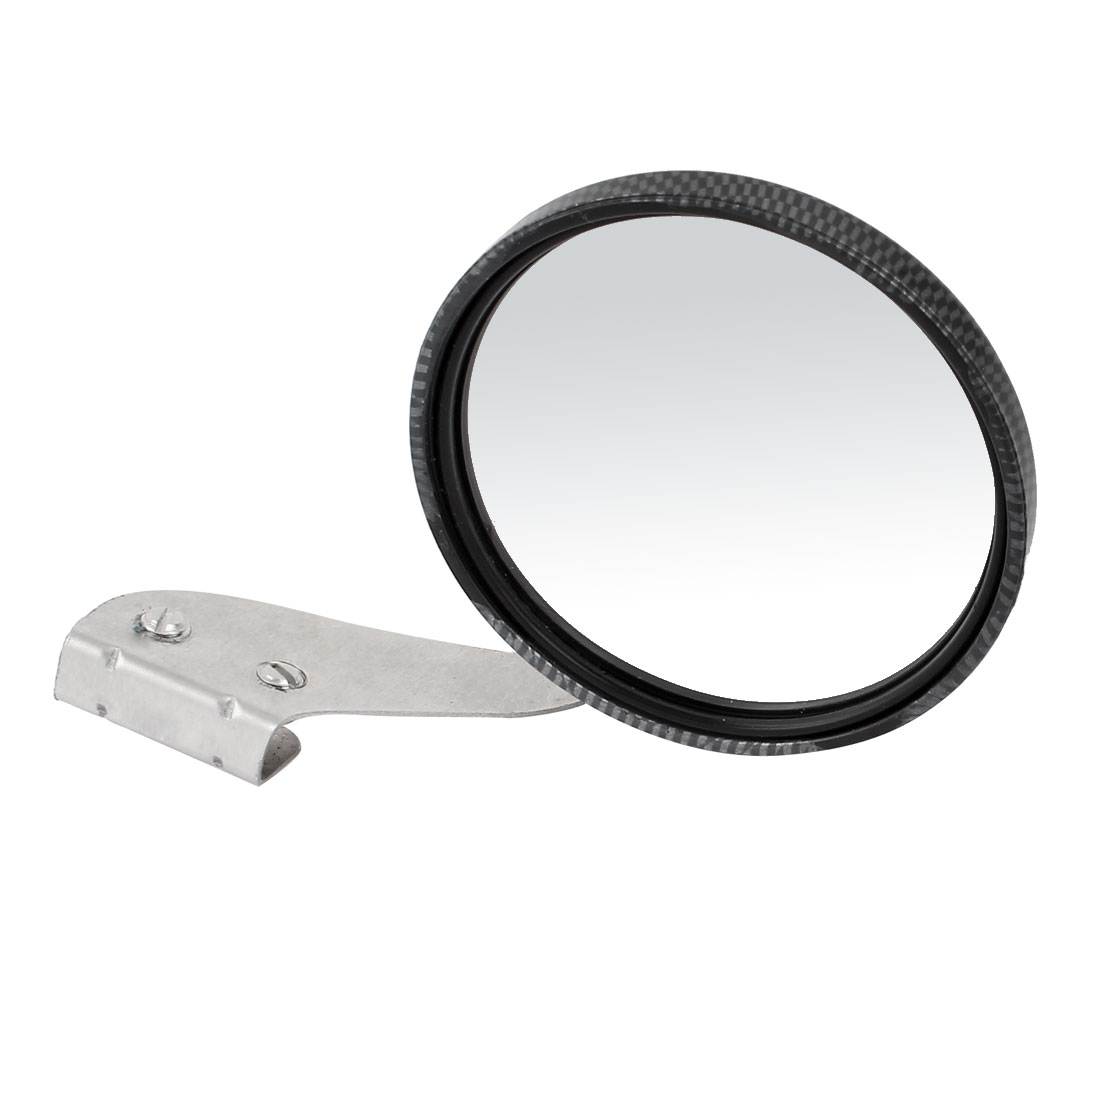 Car Carbon Fiber Plastic Shell Adjustable Angle Right Sideview Assistant Mirror